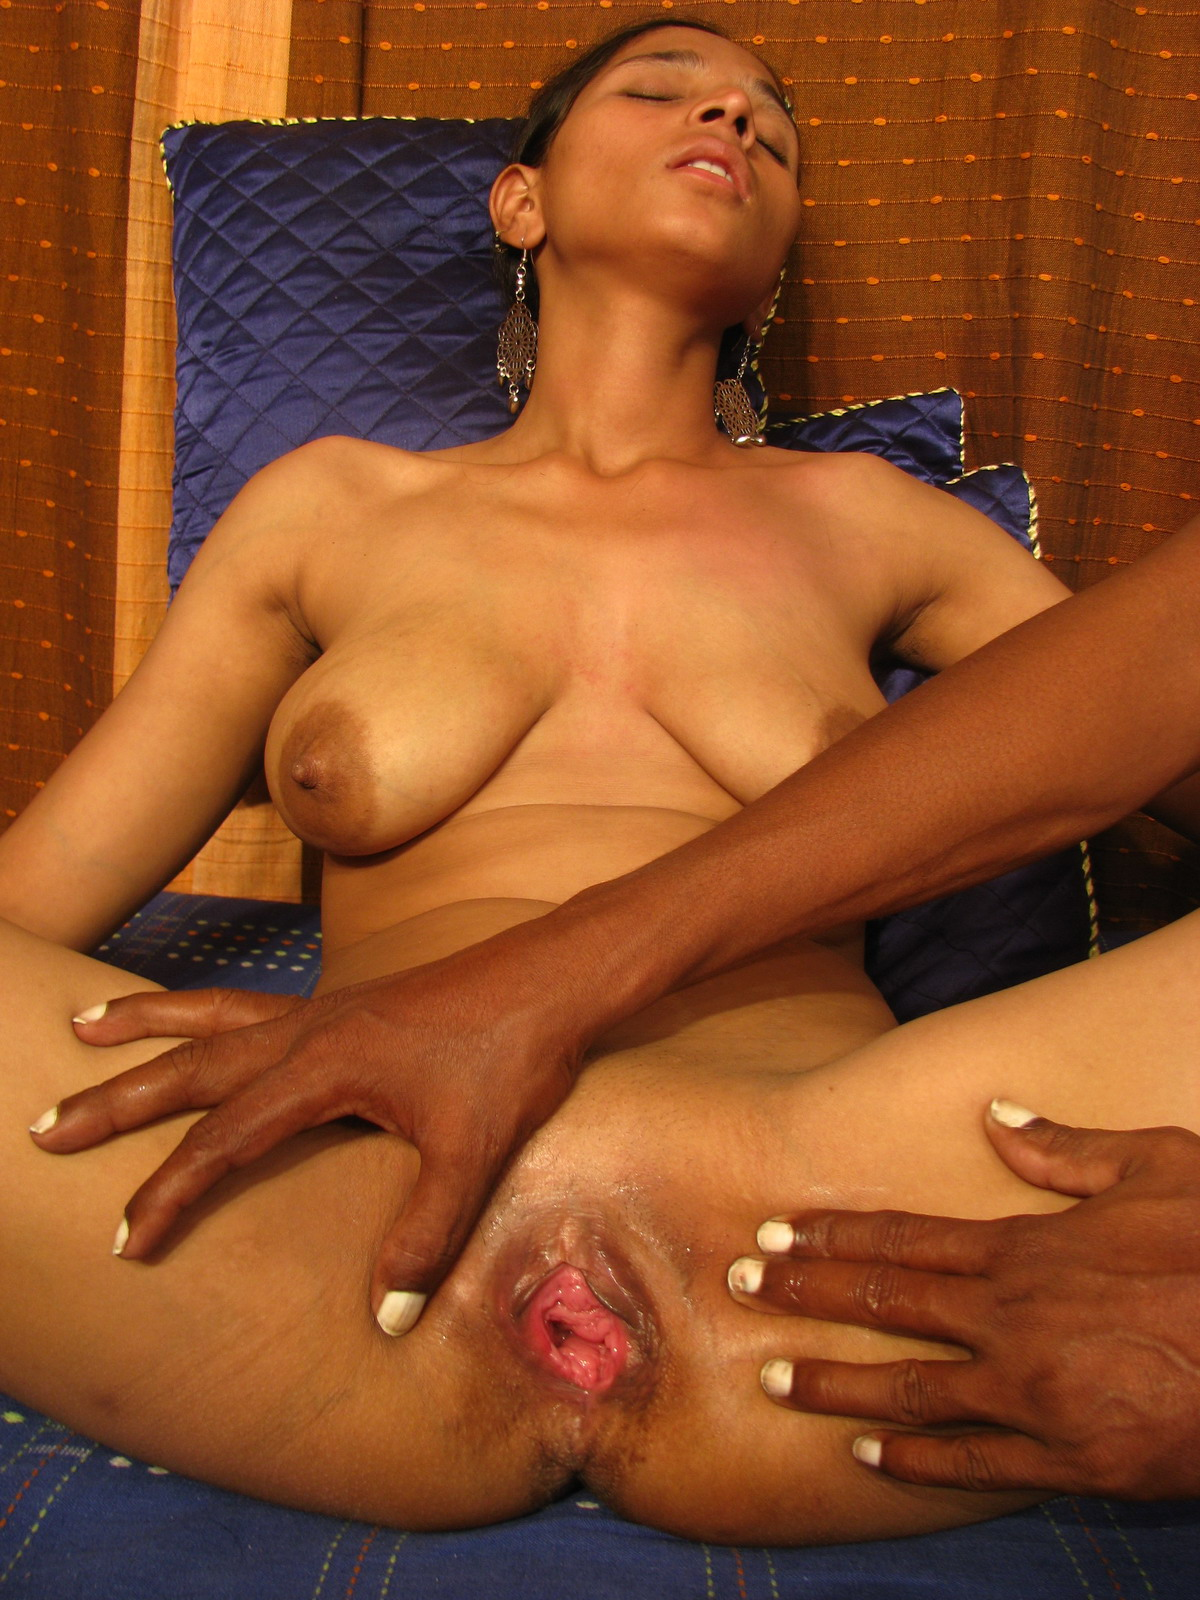 Indian virgin skinny girl fucking, weird fantasy mare porn